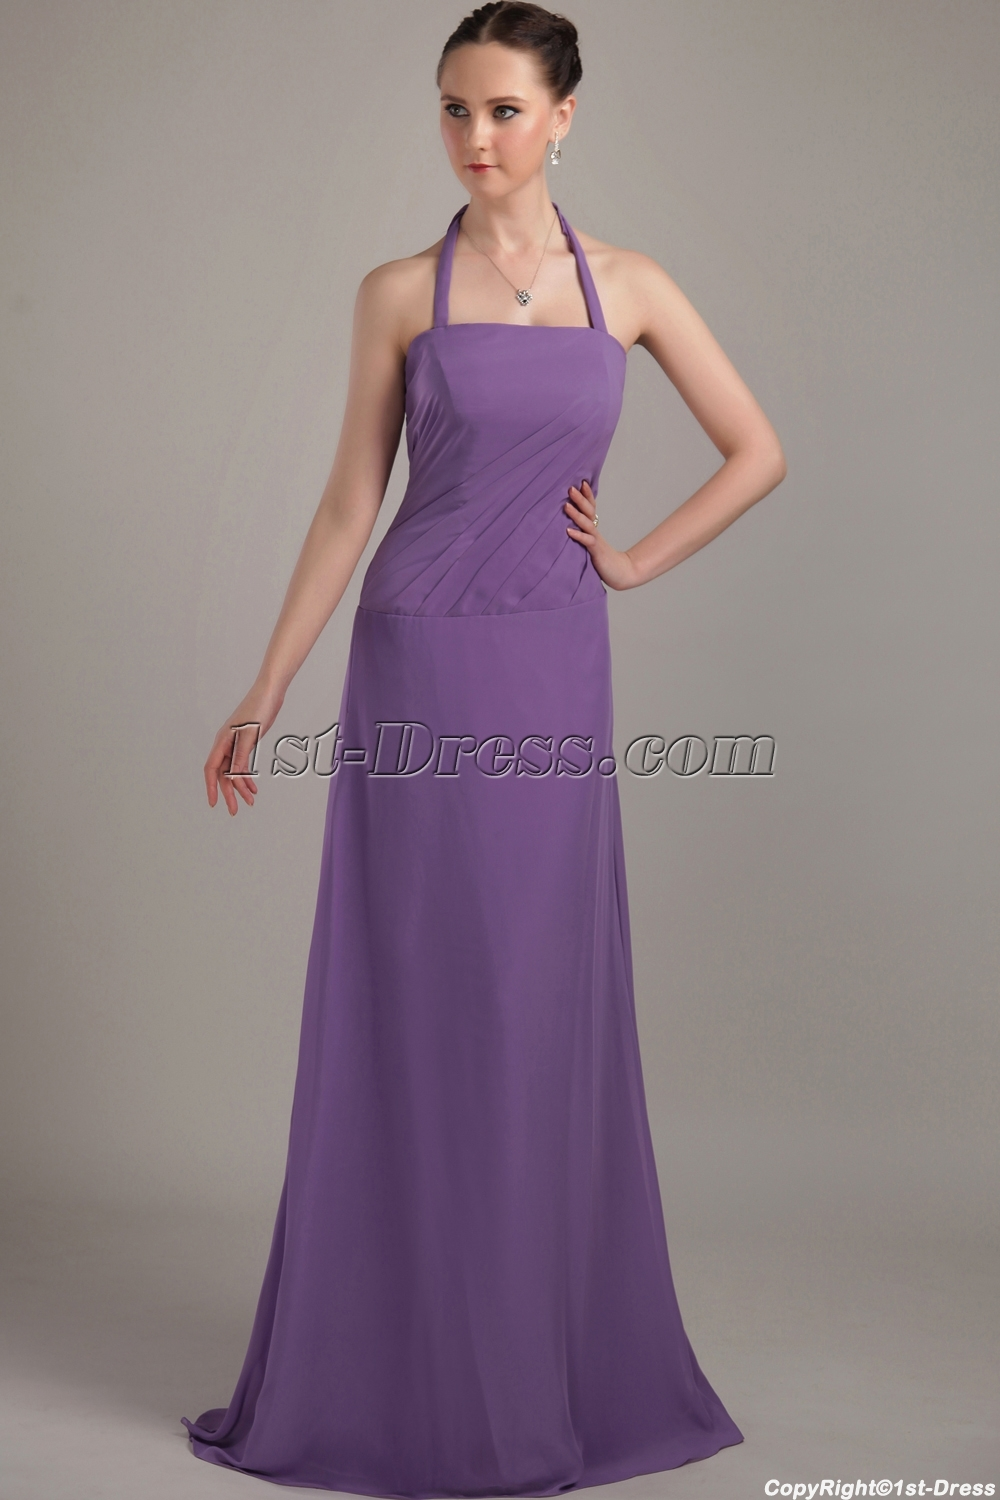 images/201304/big/Lilac-Long-Summer-Bridesmaid-Dresses-IMG_3268-1063-b-1-1366194807.jpg